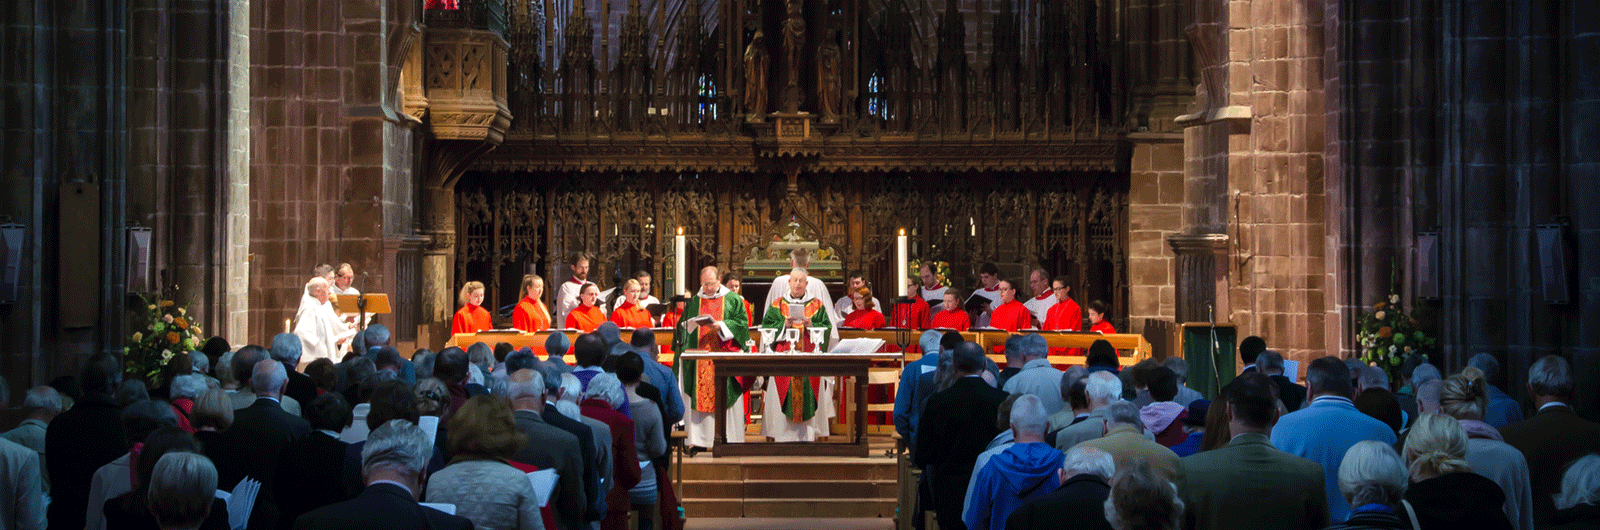 chester_cathedral_service